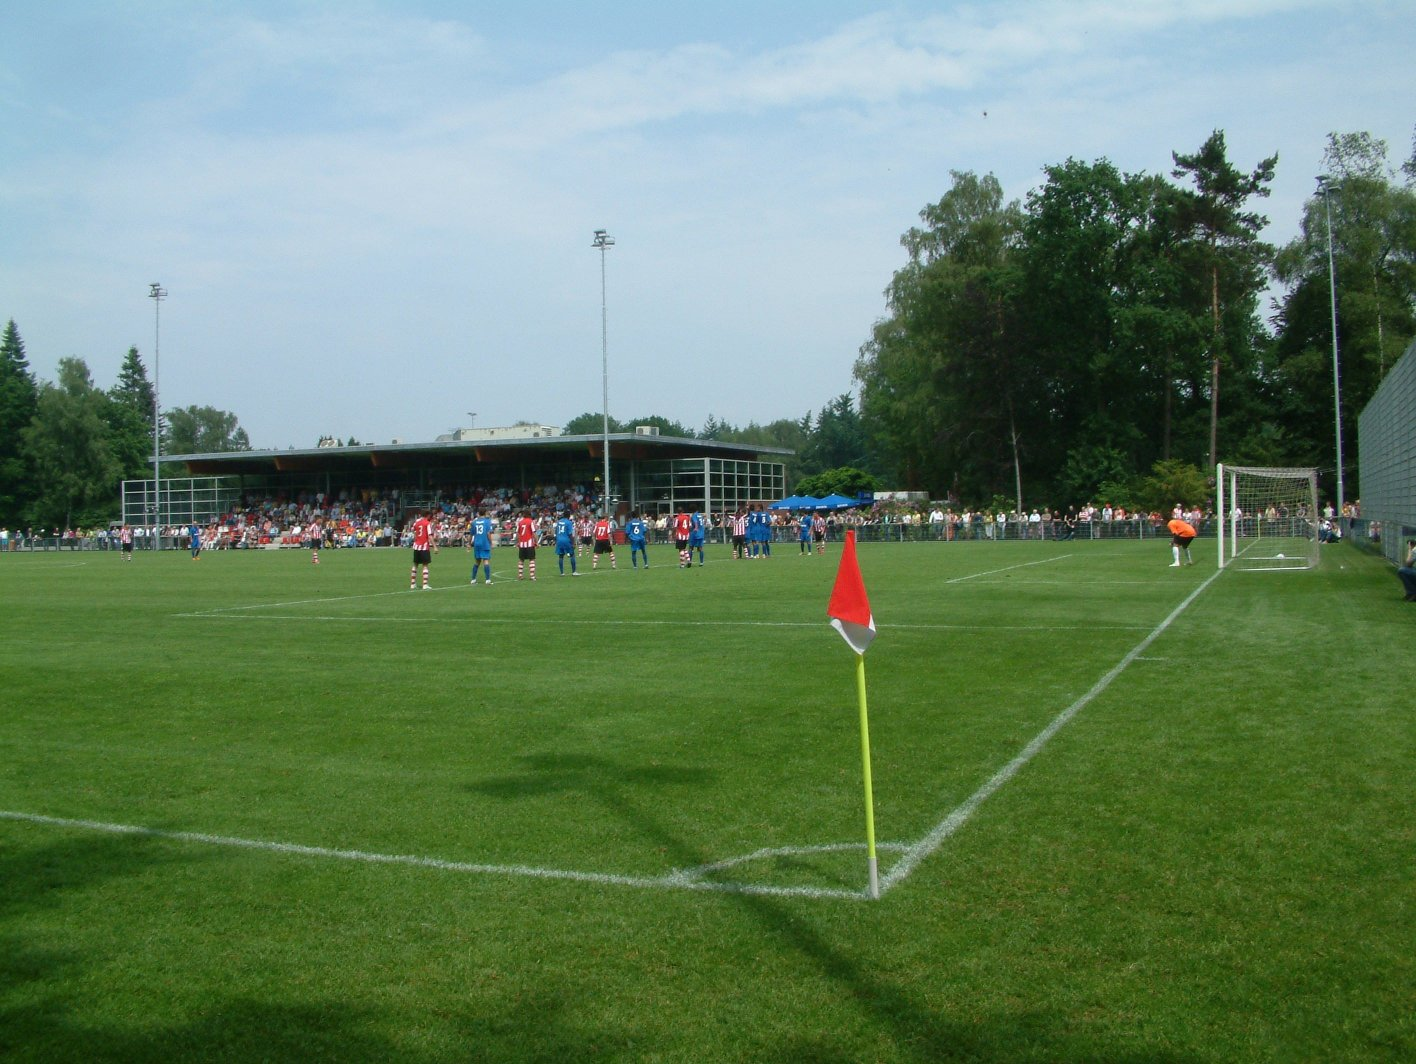 De Herdgang: PSV's Youth Academy